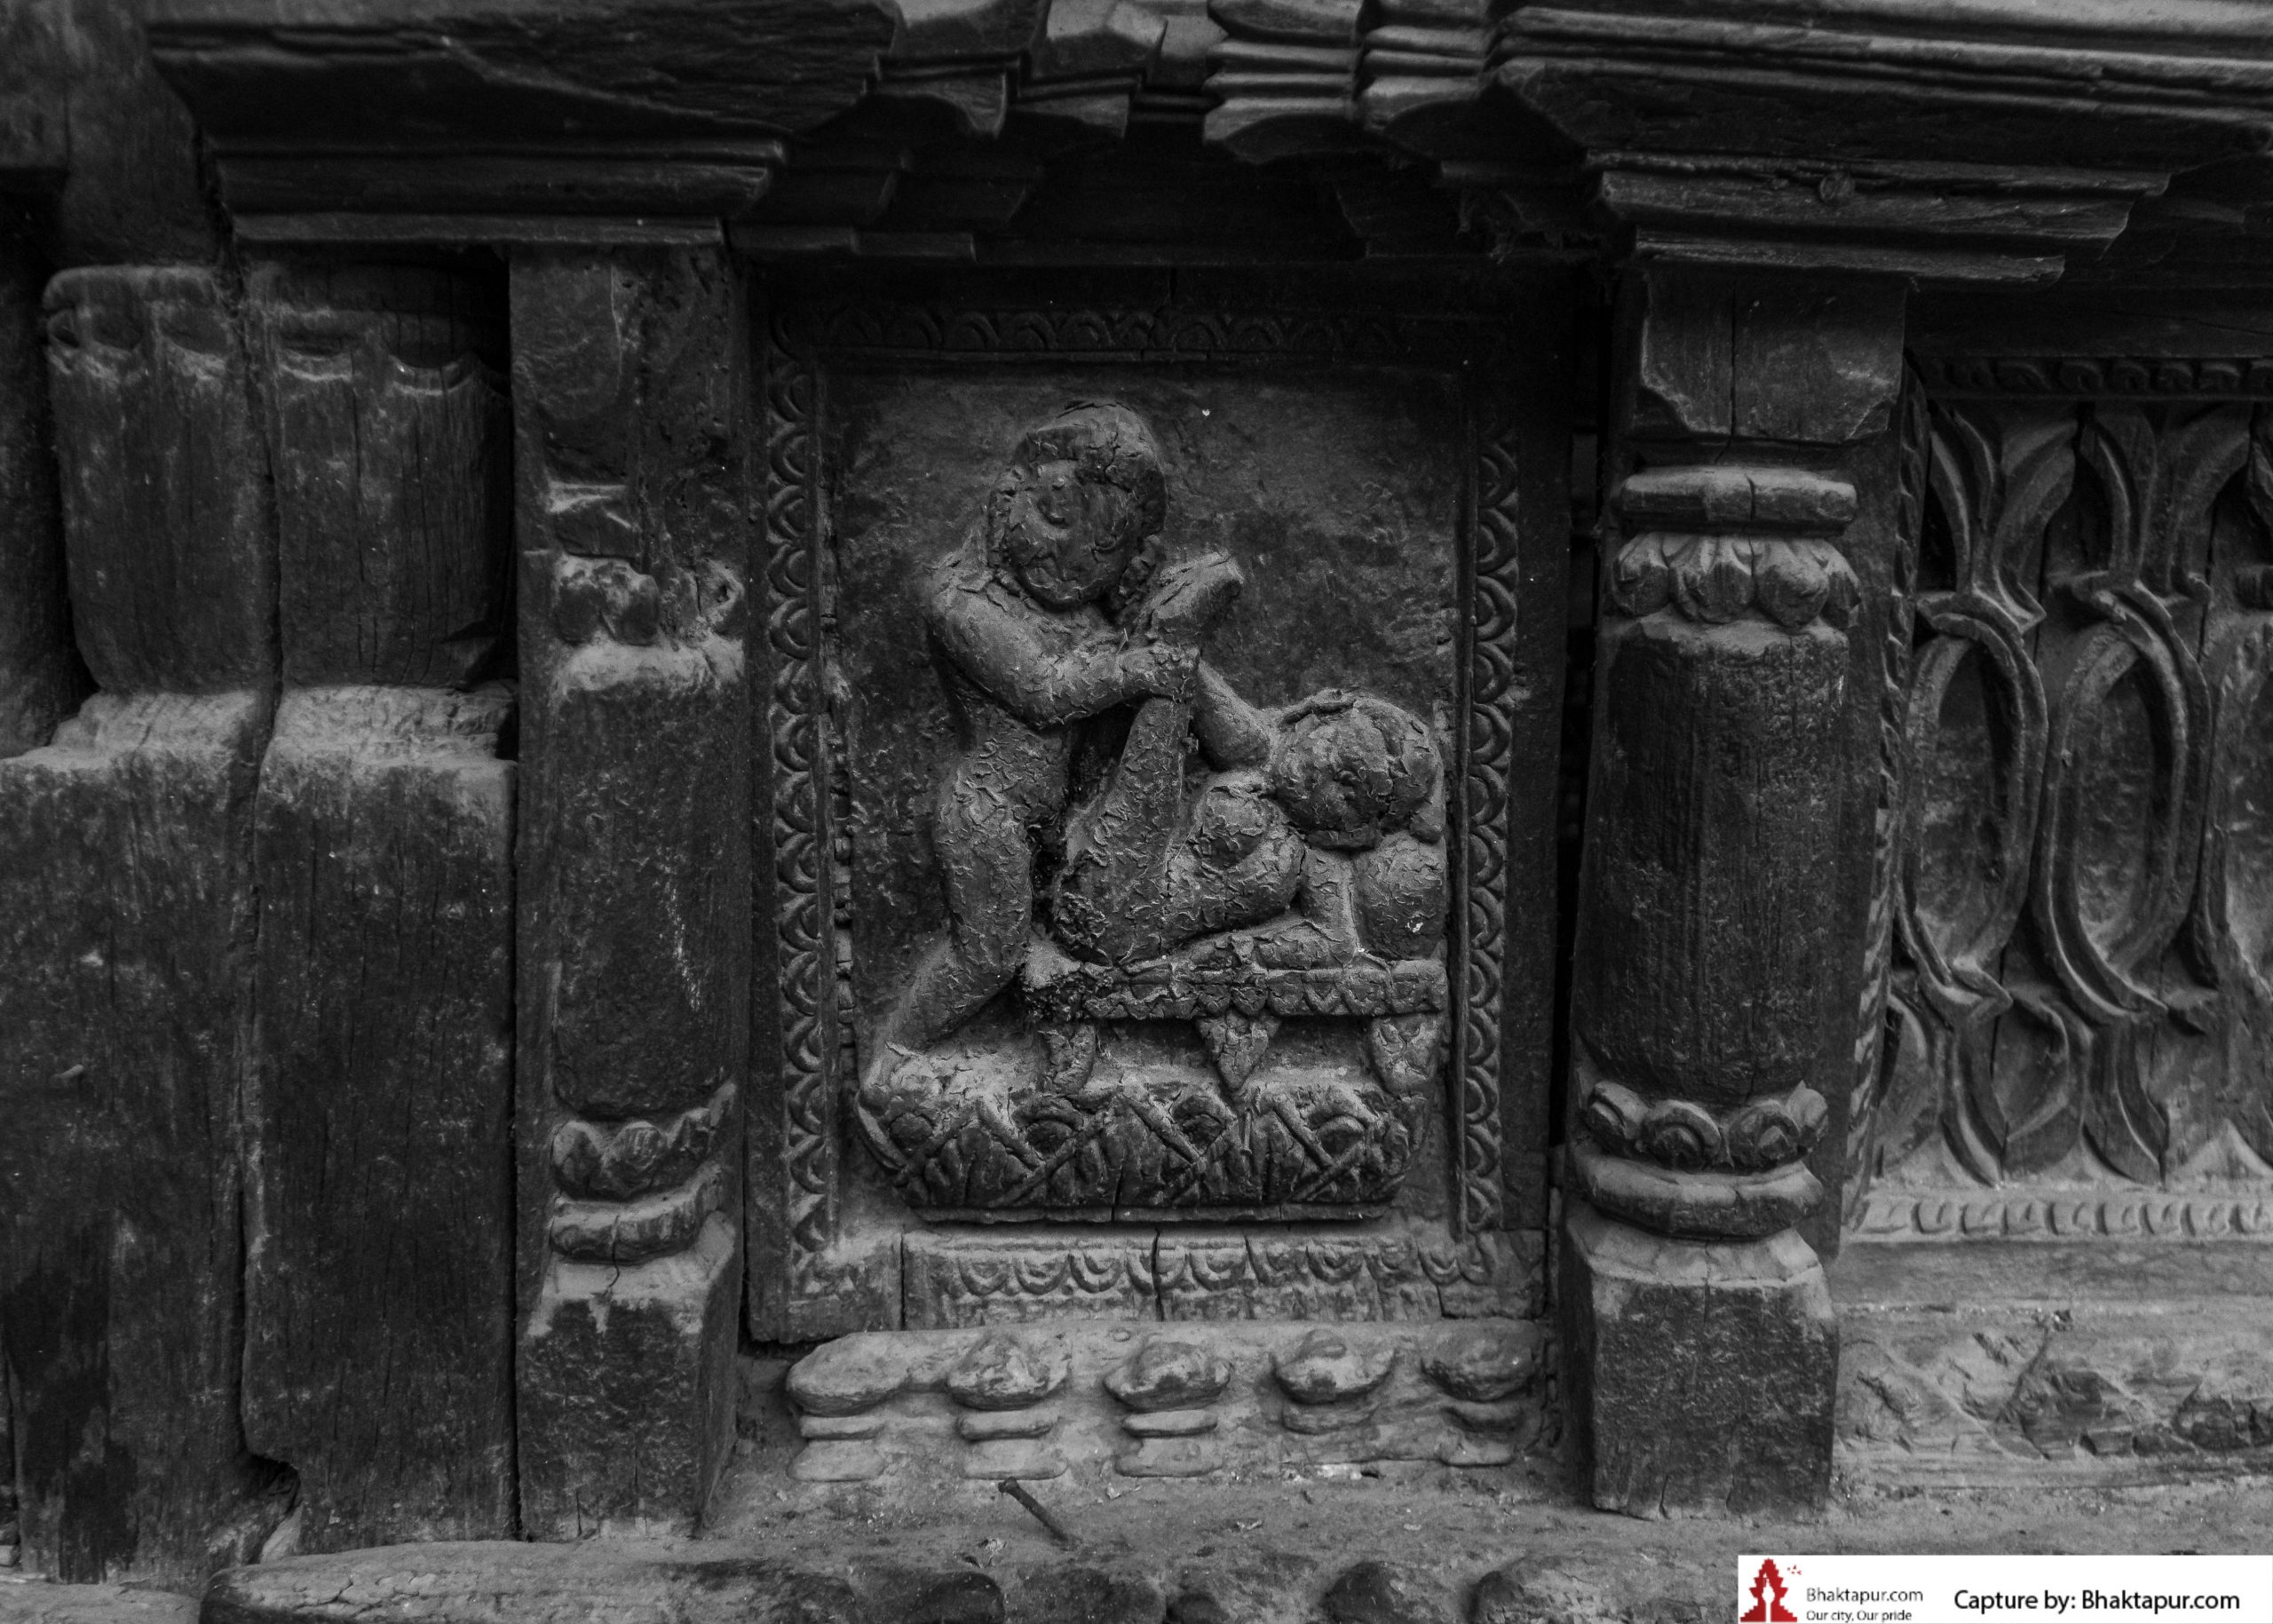 https://www.bhaktapur.com/wp-content/uploads/2021/08/erotic-carving-3-of-137-scaled.jpg